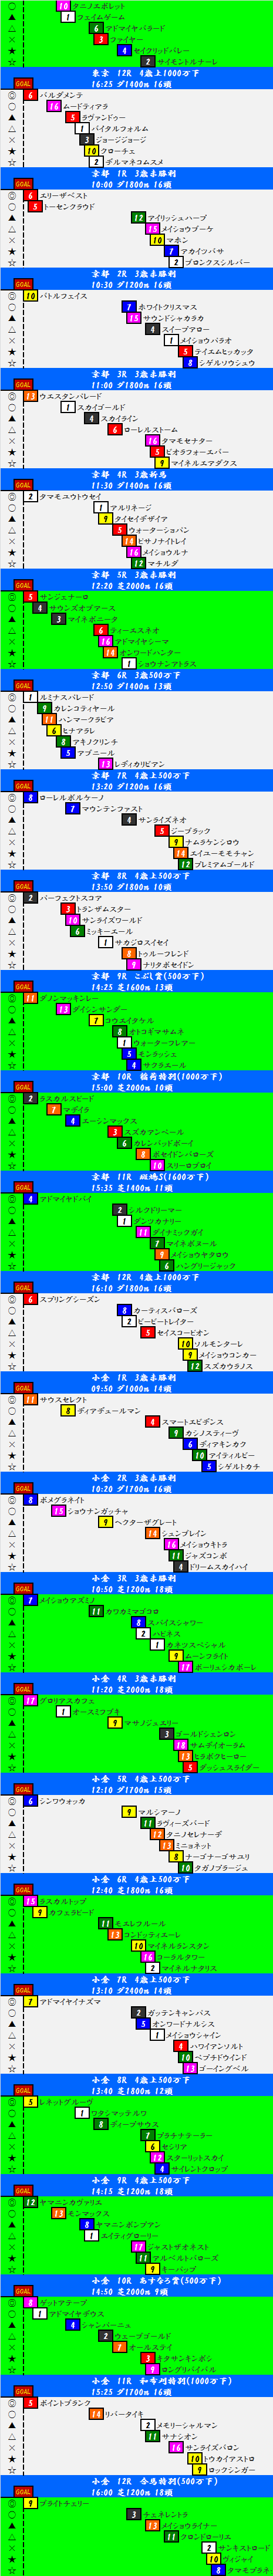 201402222.png